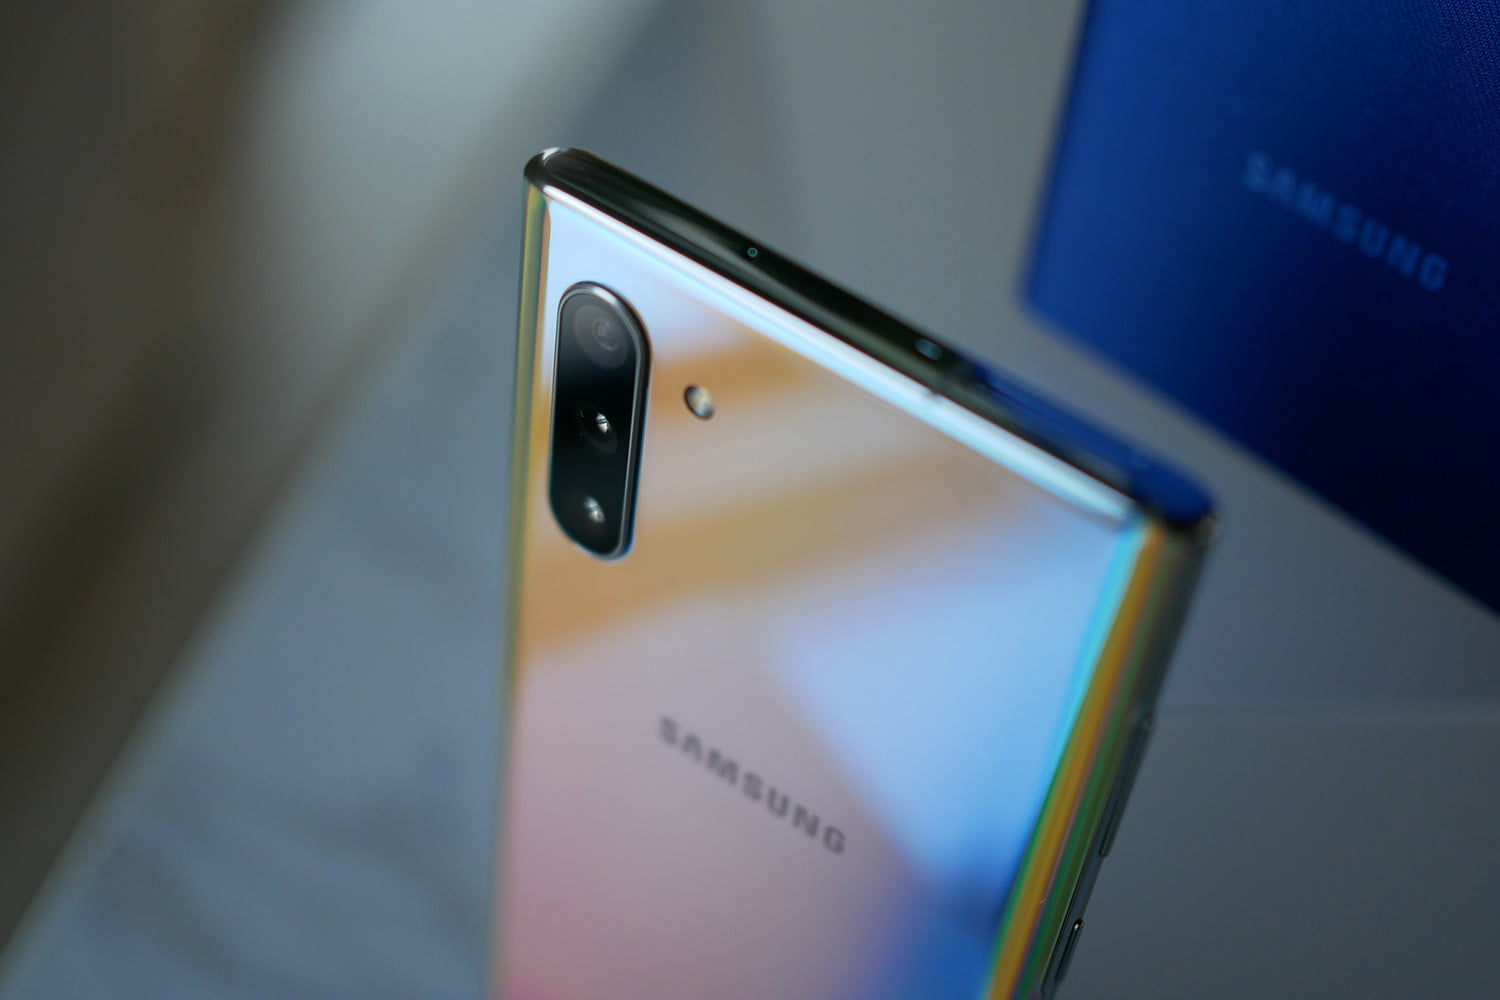 What Is Stainless Steel Made Of >> Samsung Thought The New Note 10 Was Made Of Stainless Steel